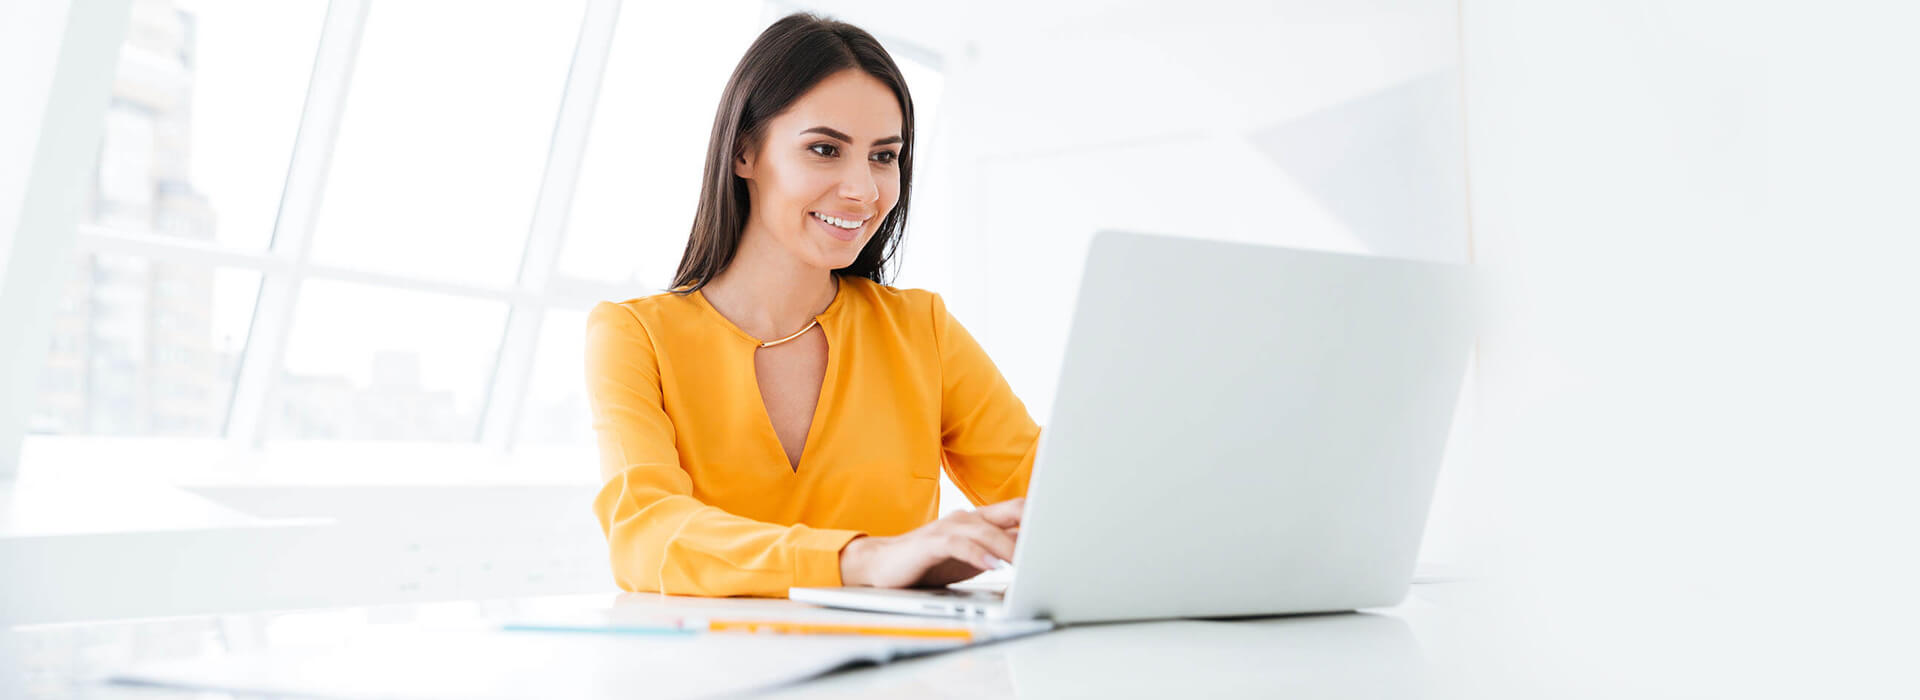 What Is the Purpose of Reputation Management Software?